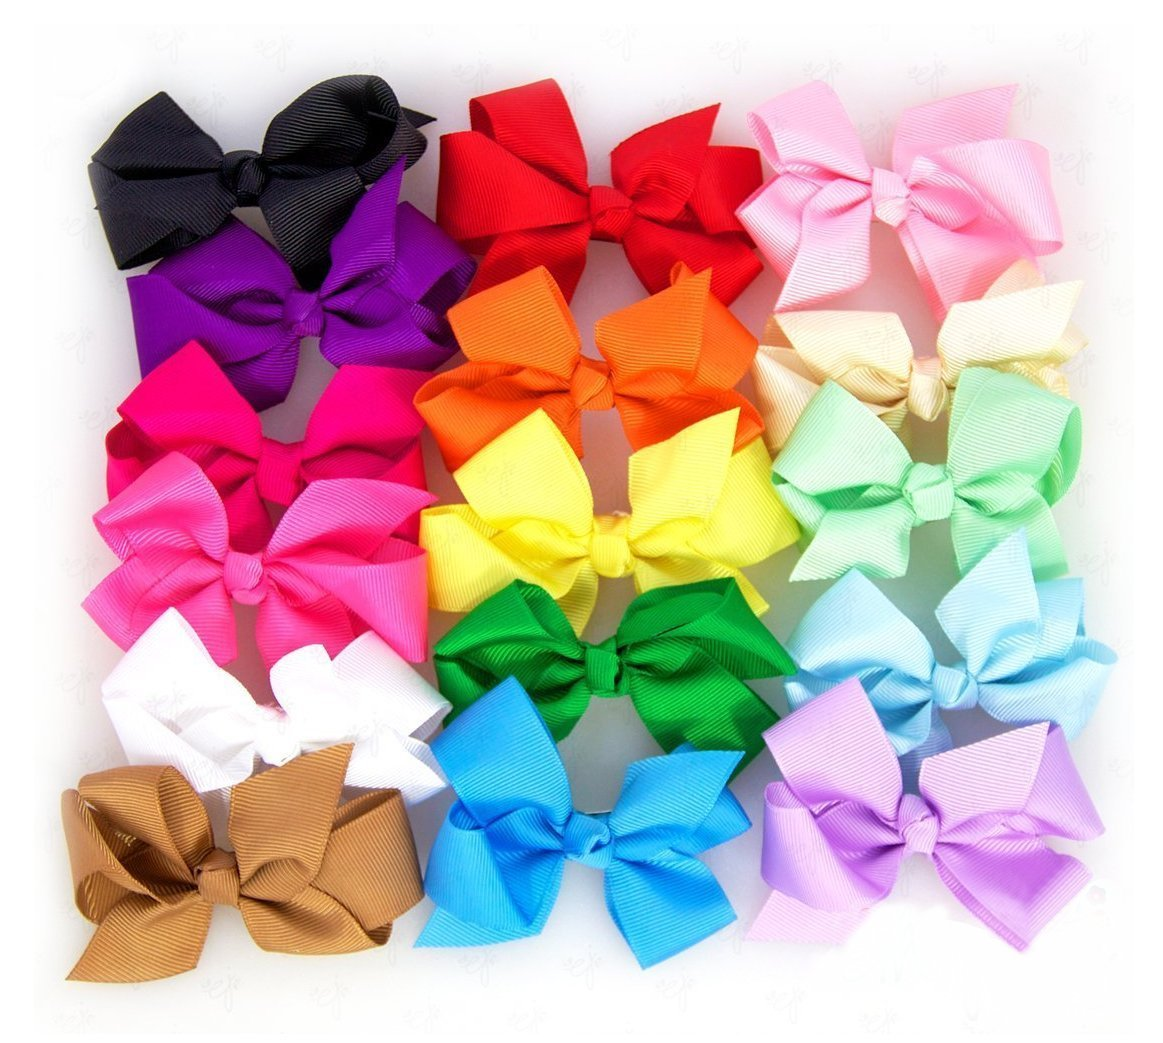 Hair bows were first used by both men and women as a practical measure to tie their Best Selection · Latest Styles · Video Gallery · Top SellersAccessories: Bibs, Bow Holders, Bow Ties, Necklaces, Socks and more.